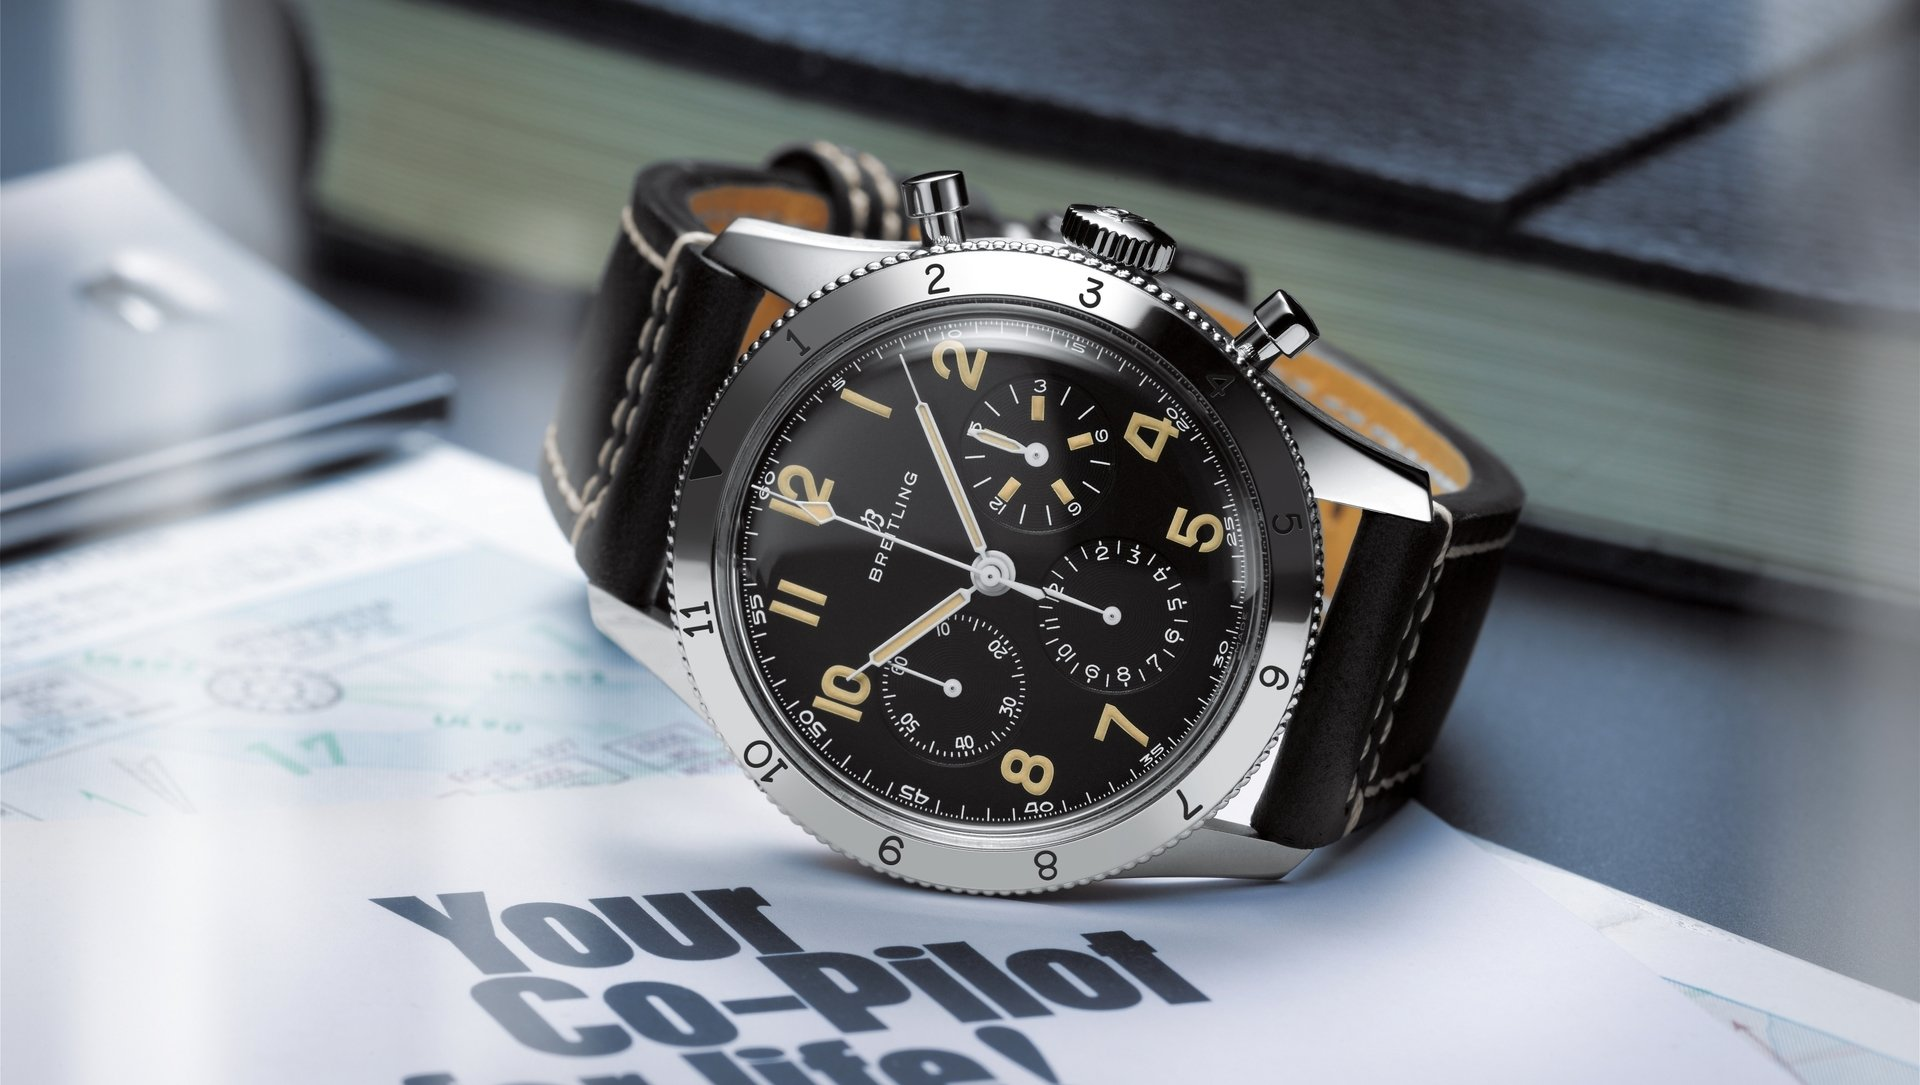 https://static.breitling.cn/media/News/0218/_1.jpg